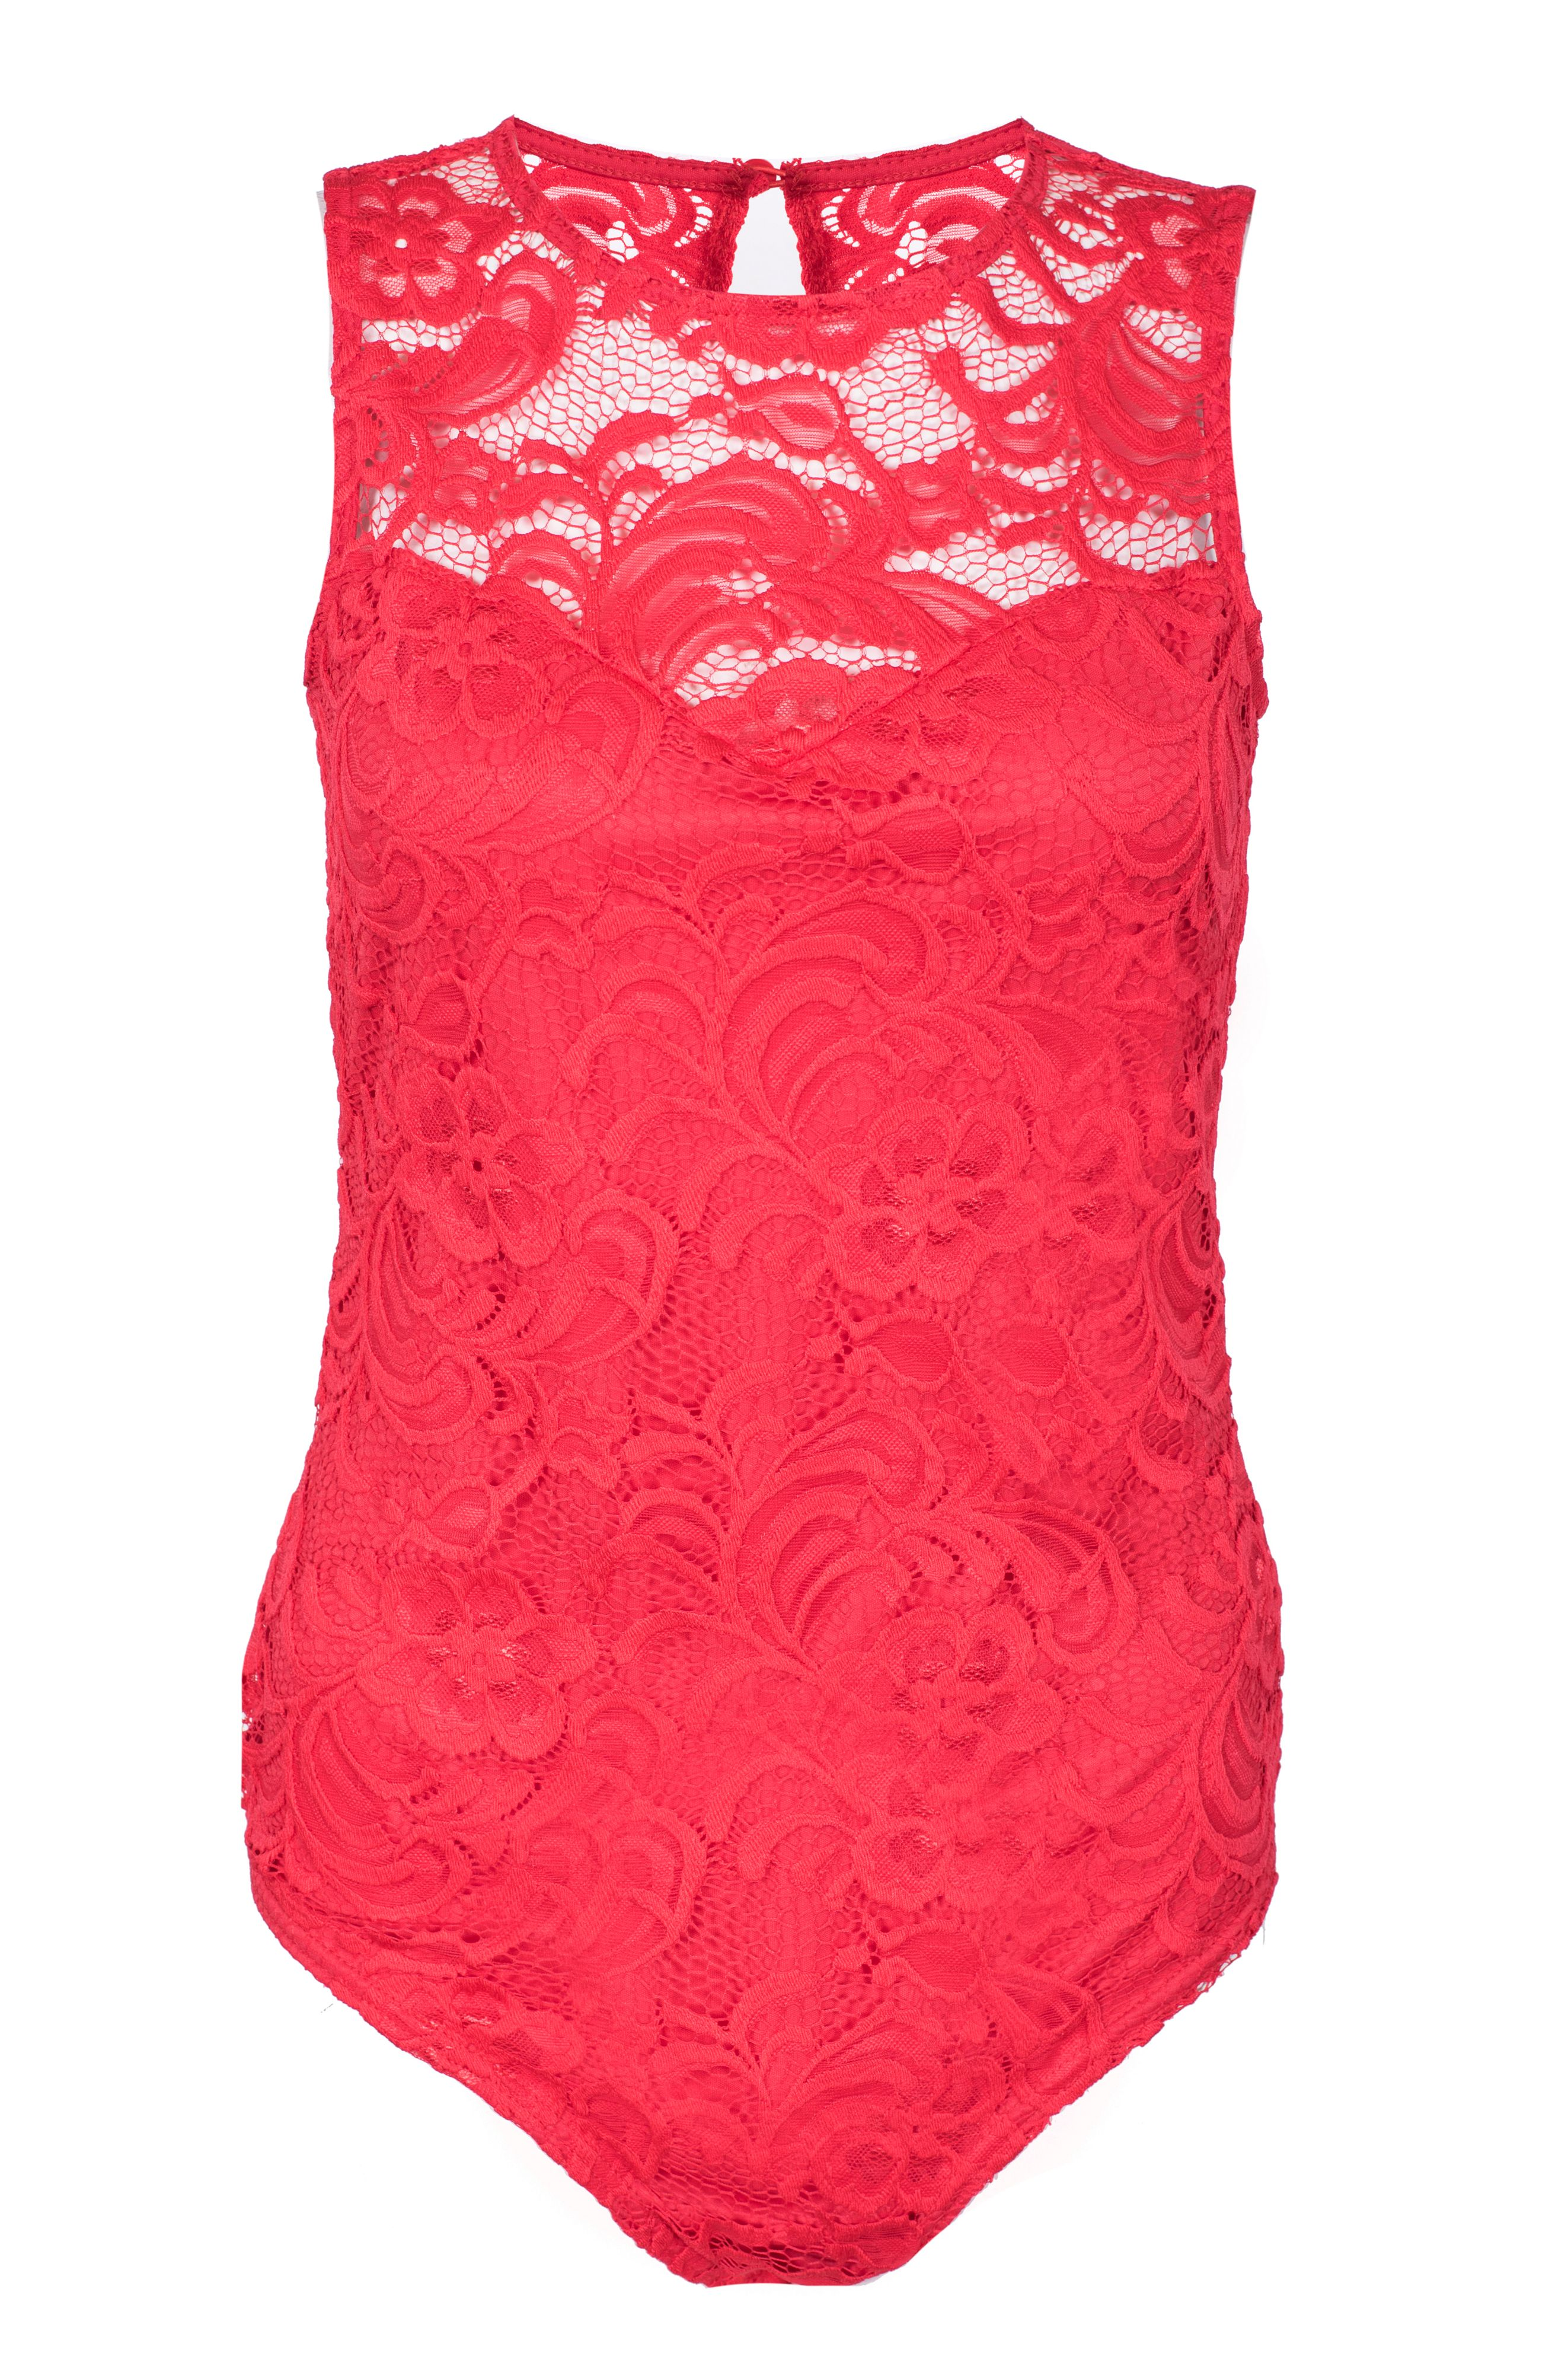 Lace bodysuit | Shop for cheap Women's Tops and Save online